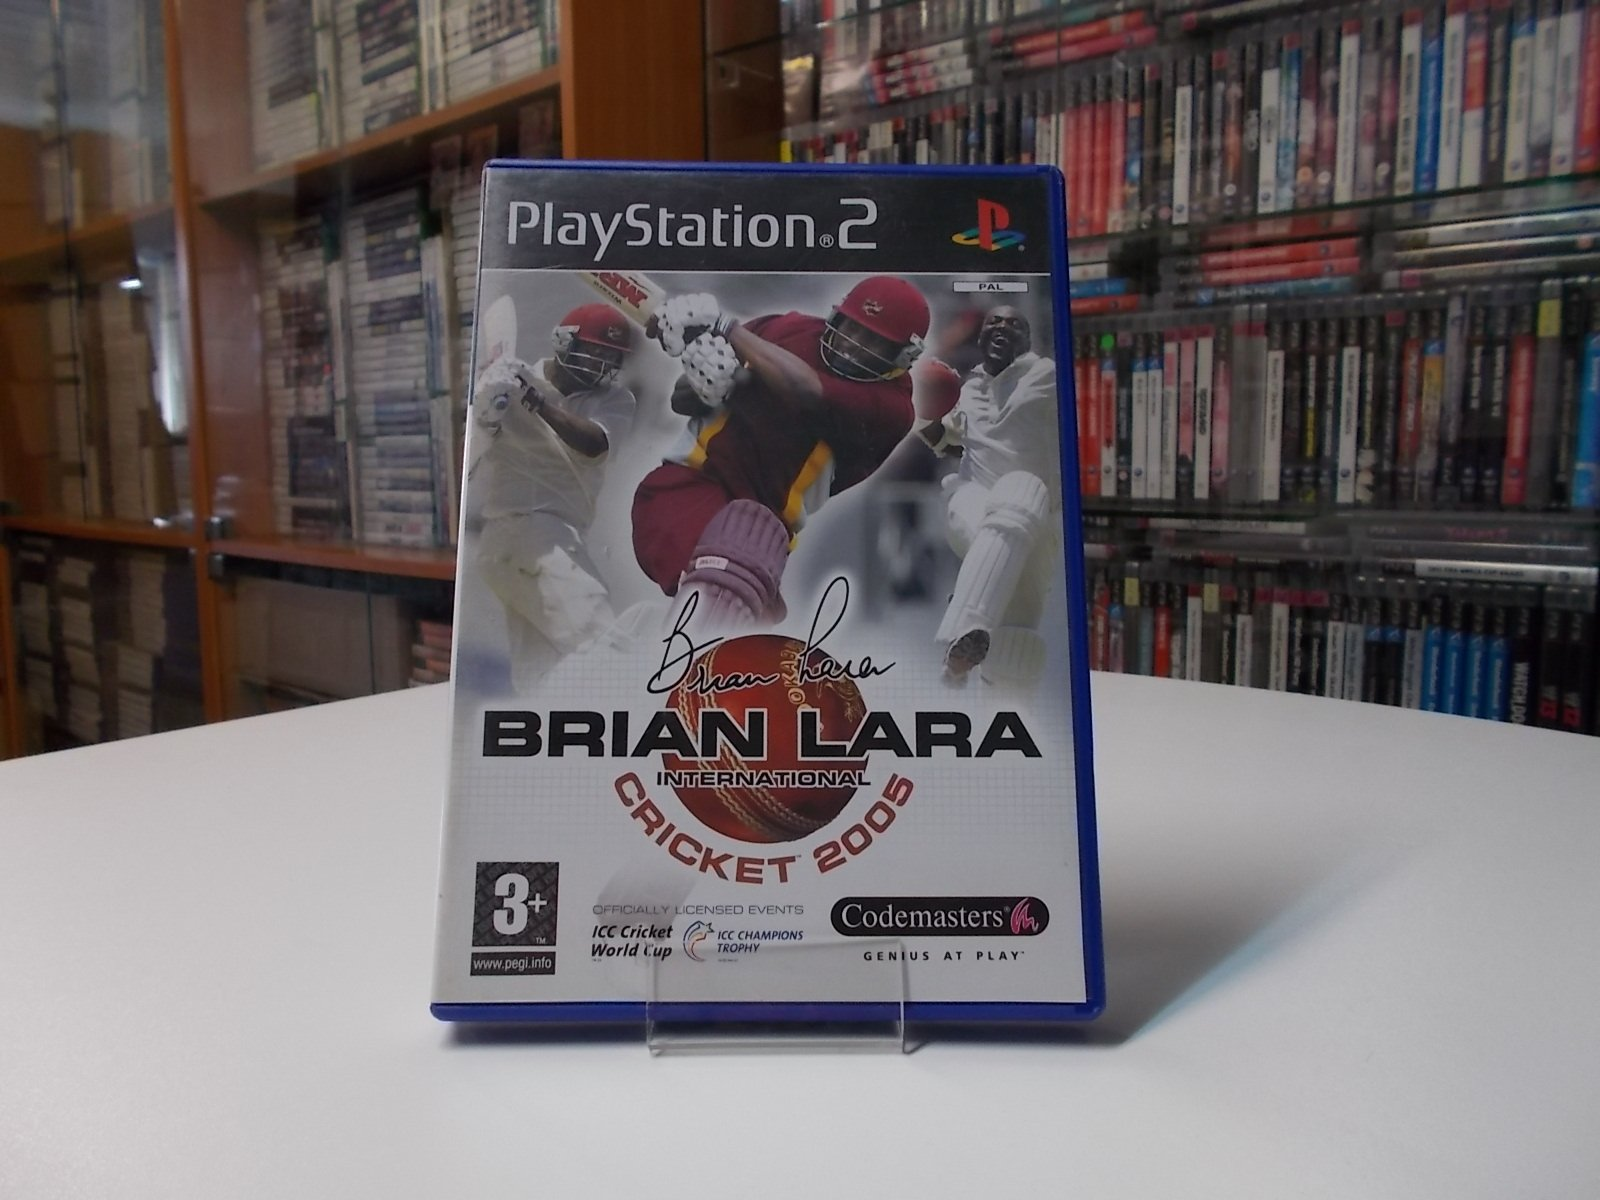 Brian Lara International Cricket 2005 - GRA Ps2 - Opole 0498